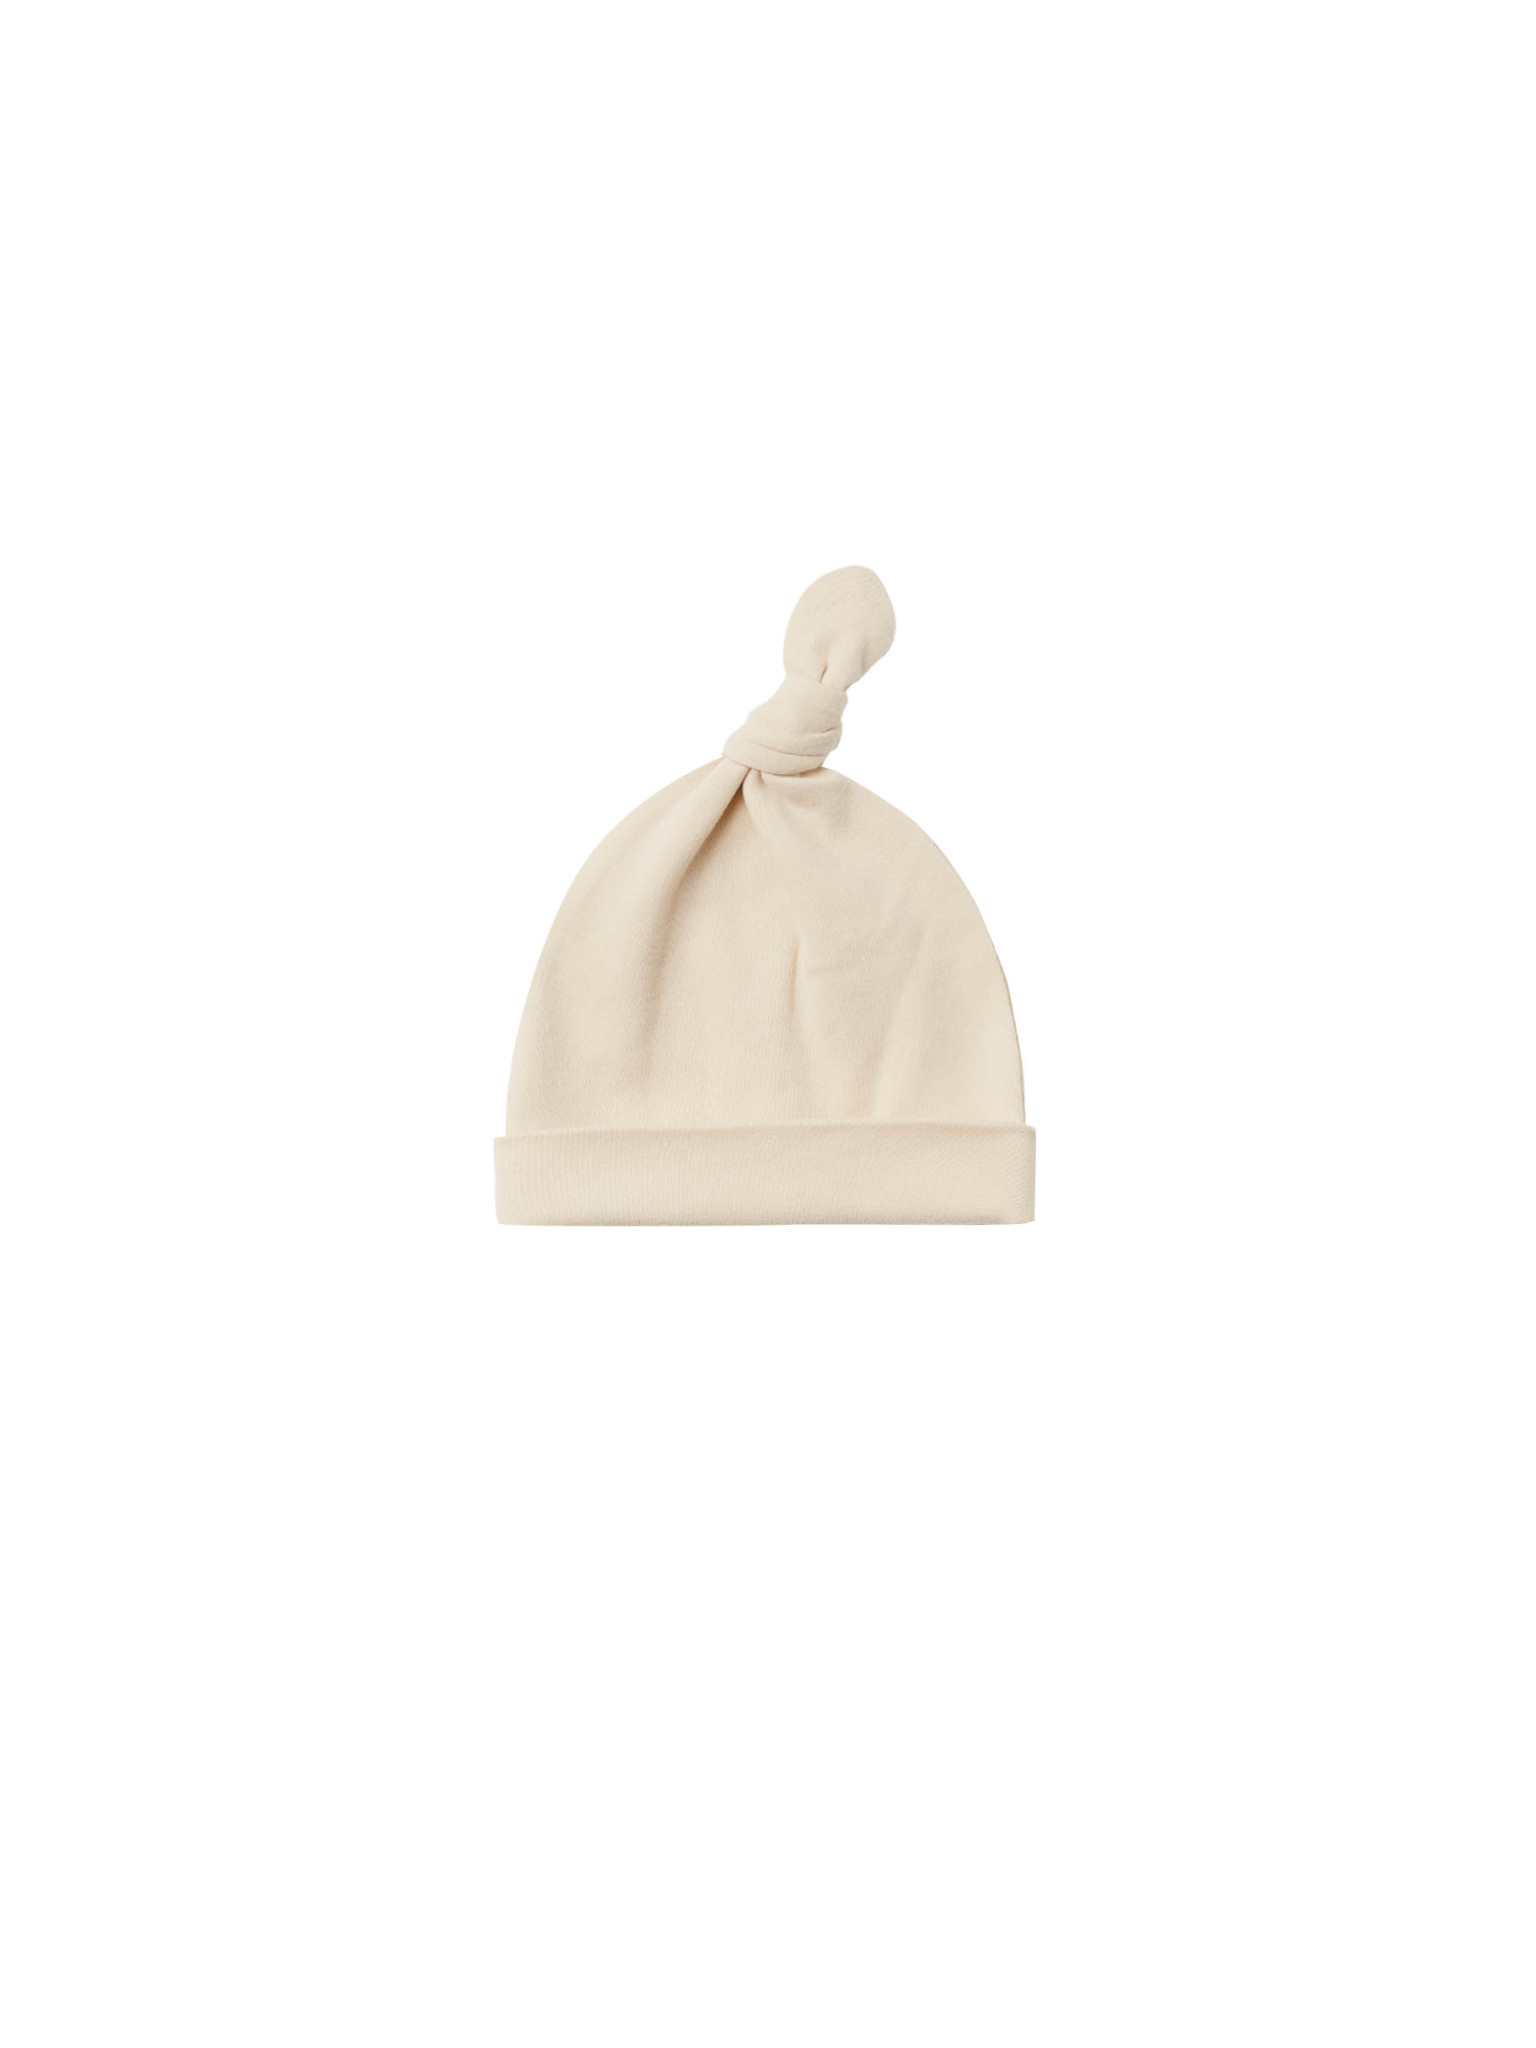 Quincy Mae - QM QM BA - Knotted Baby Hat in Natural